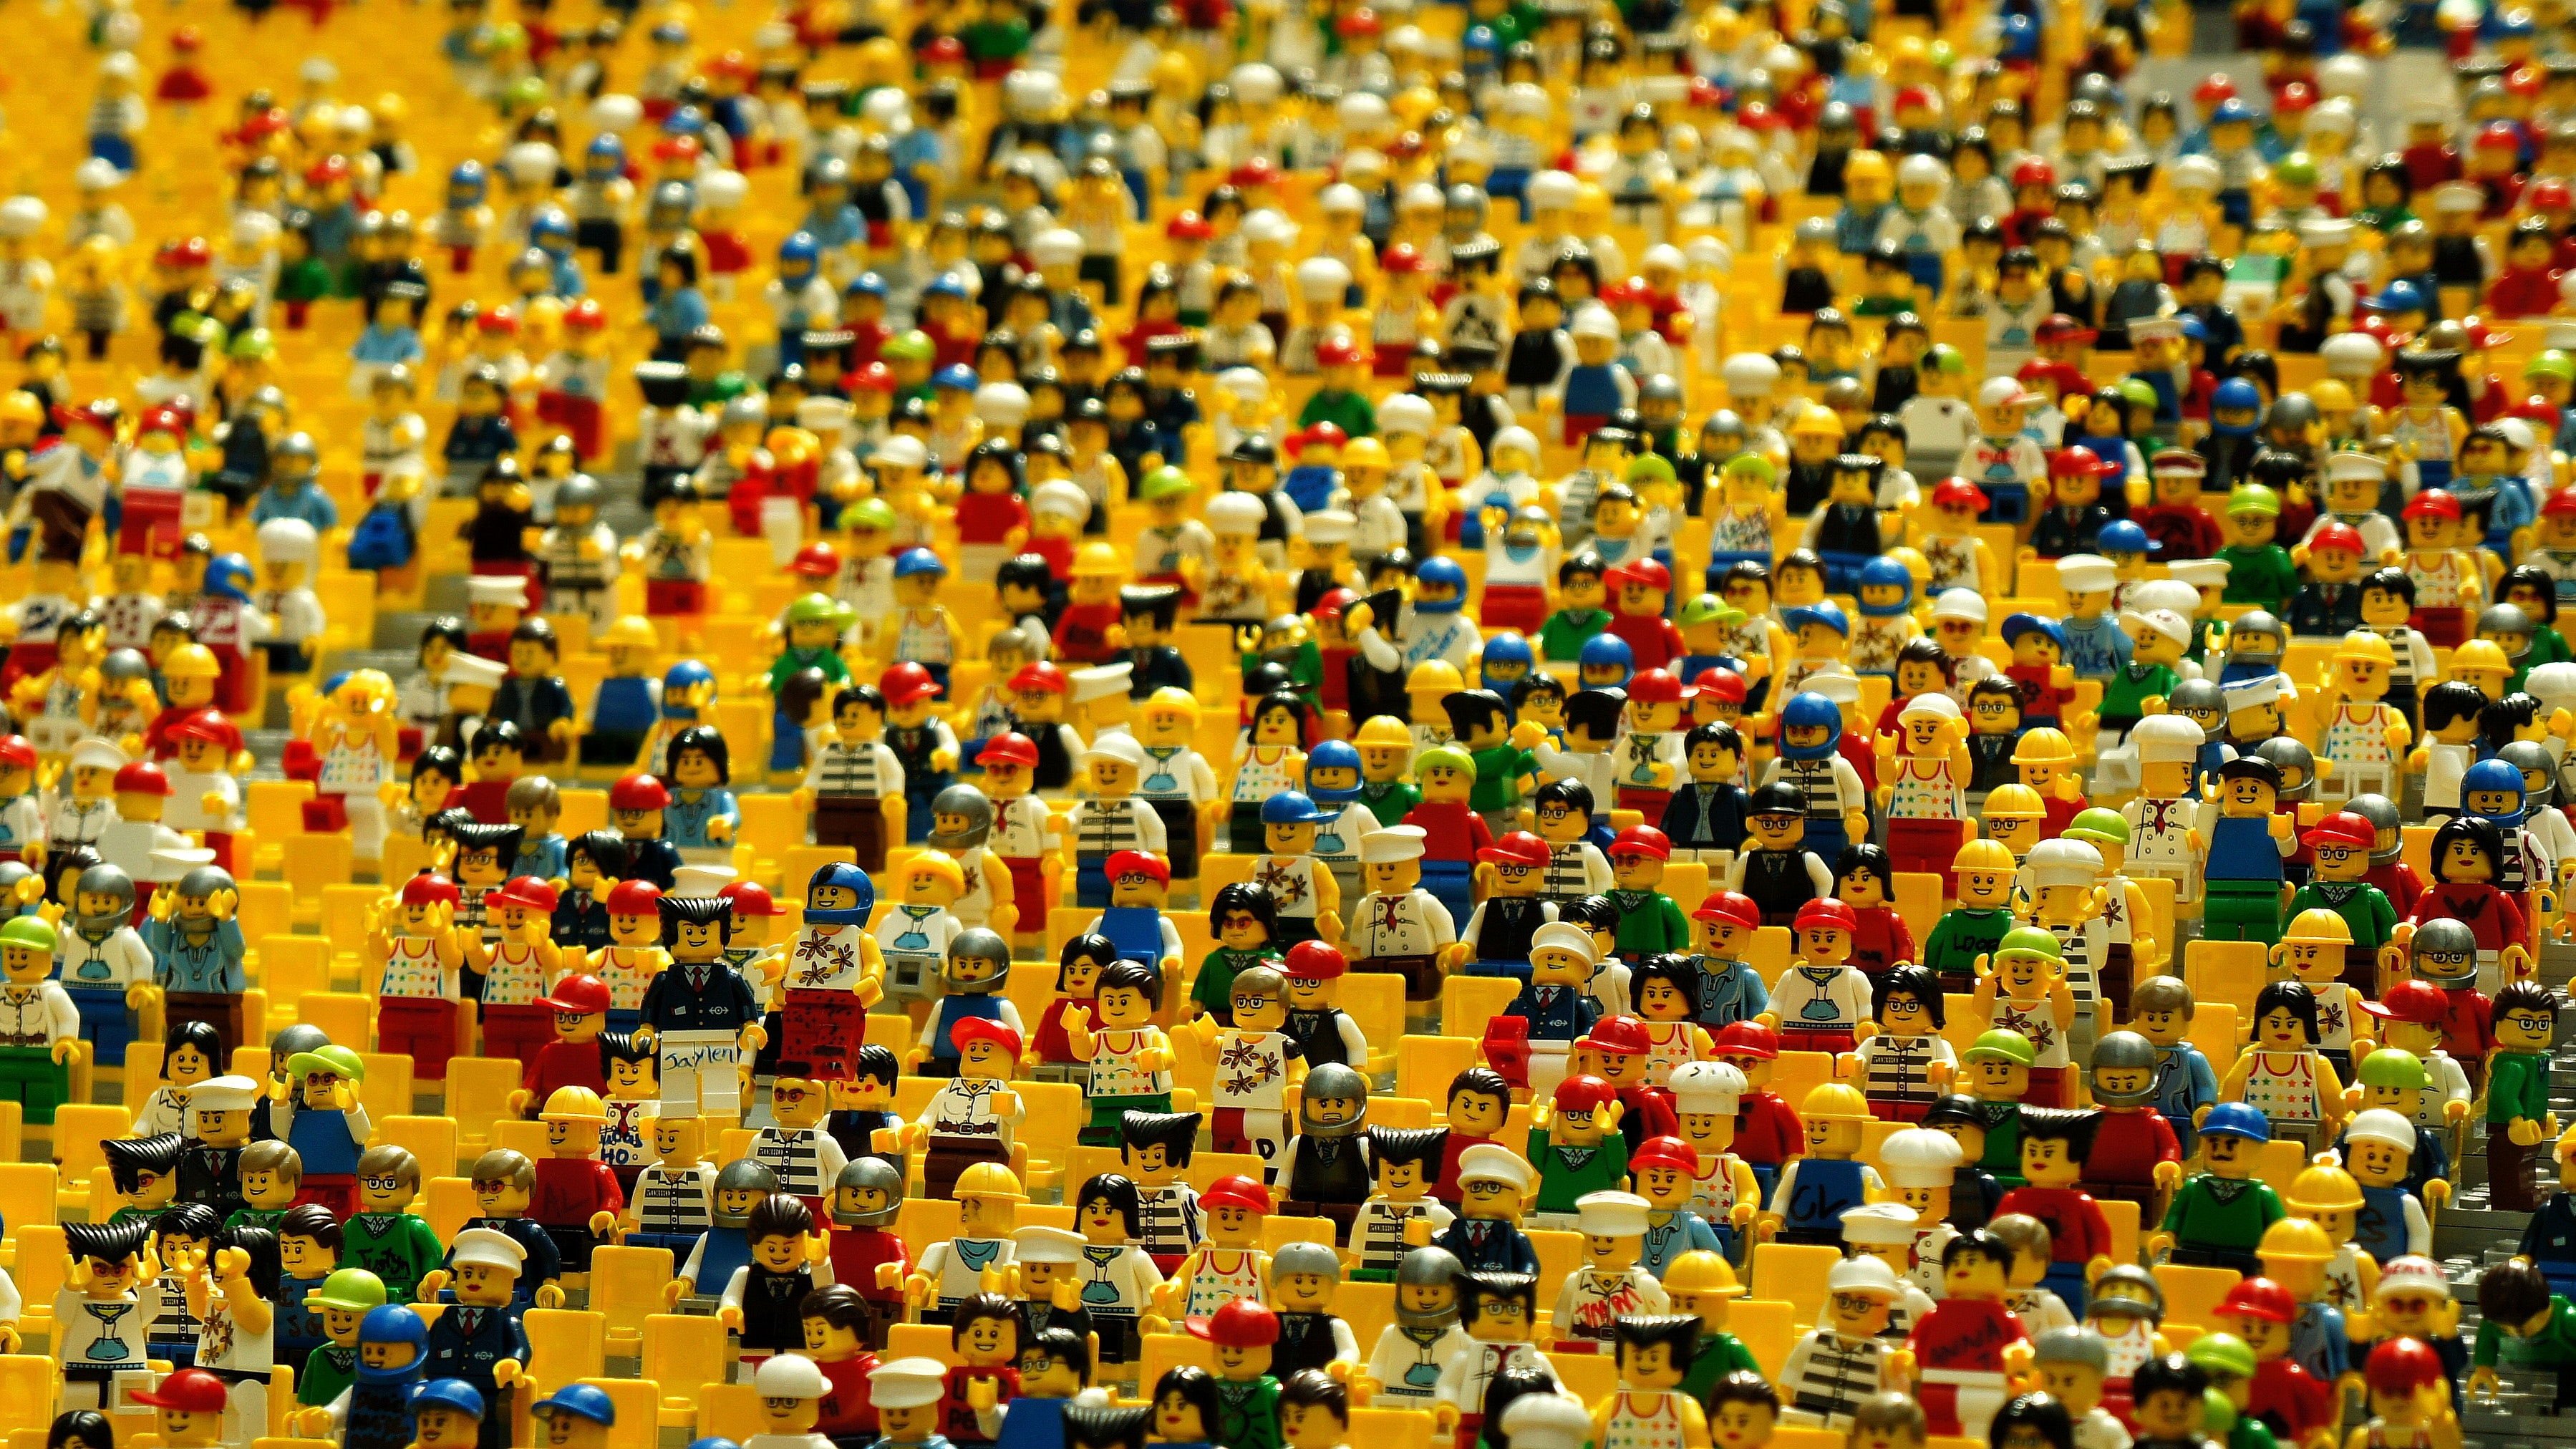 Sea of unidentified lego people